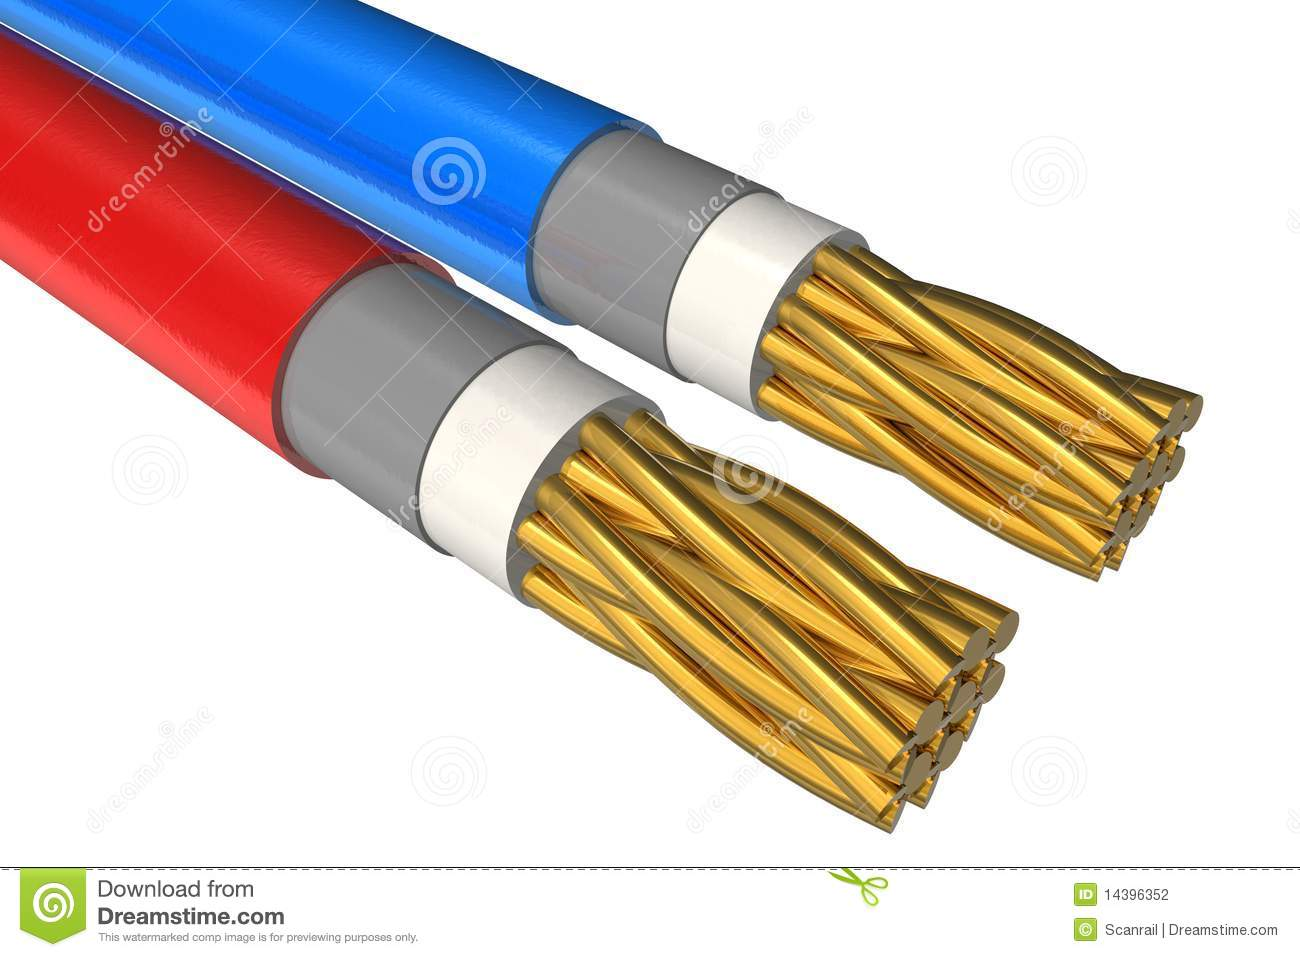 High Voltage Electrical Cable : High voltage power cable close up stock illustration